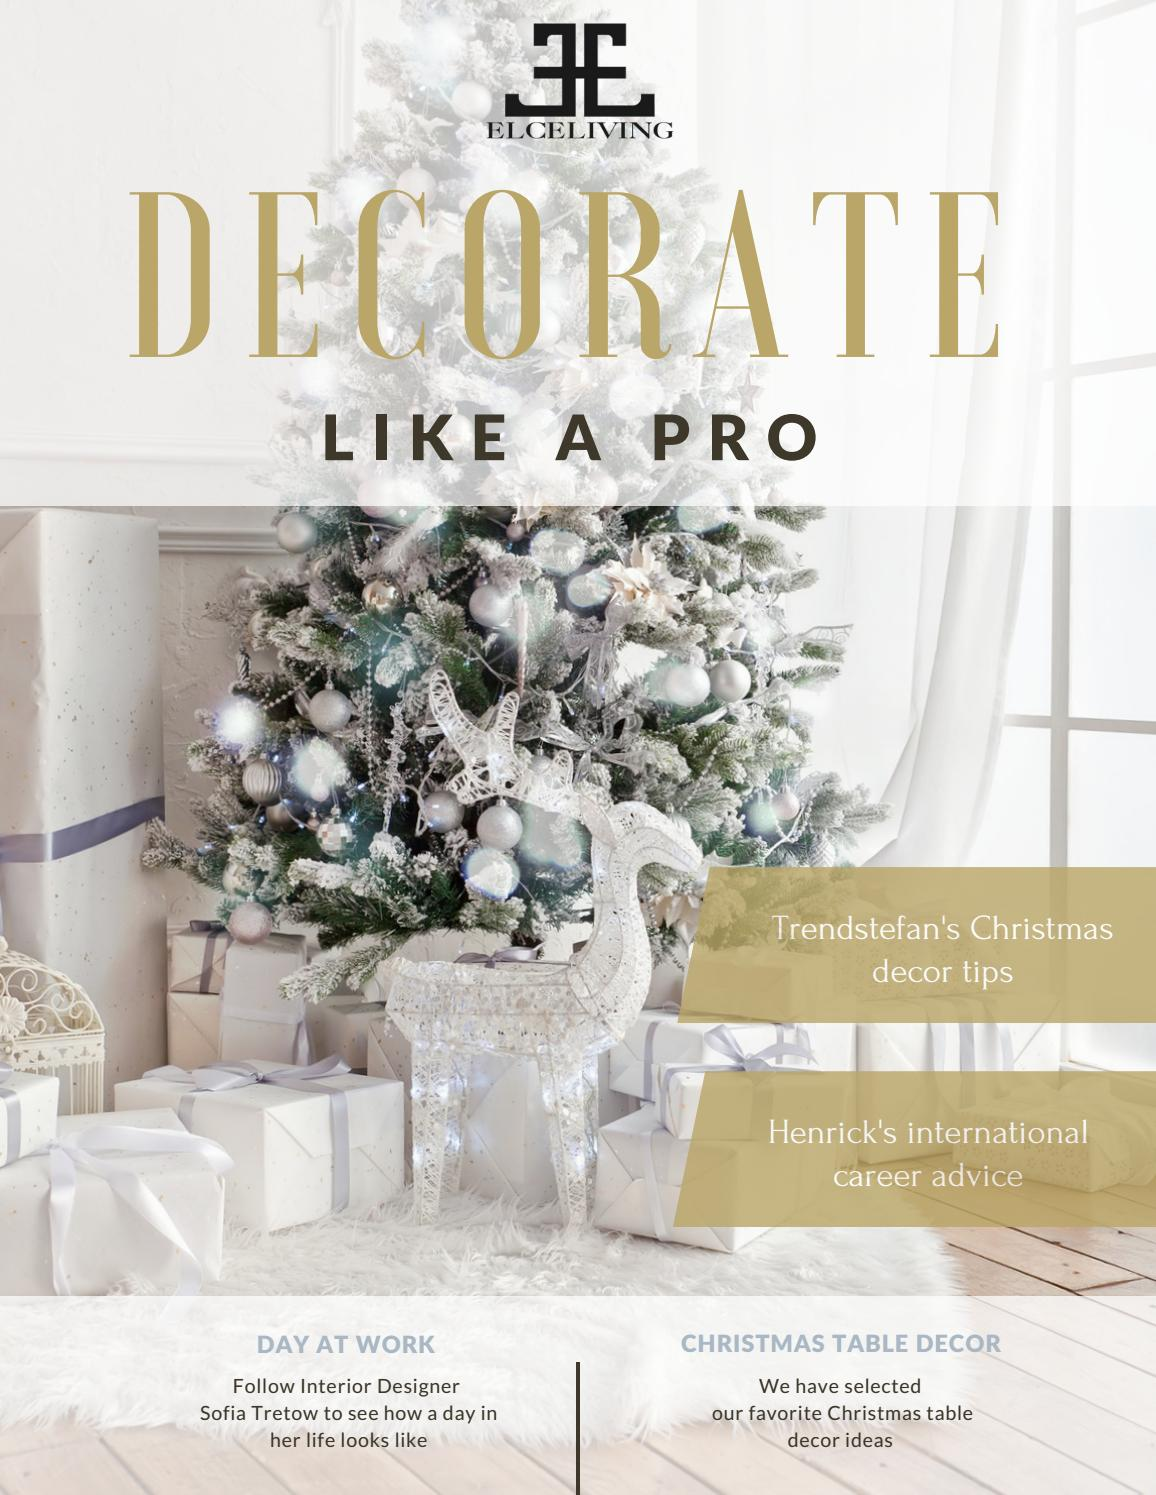 Decorate Like A Pro Dec2016 By Elceliving